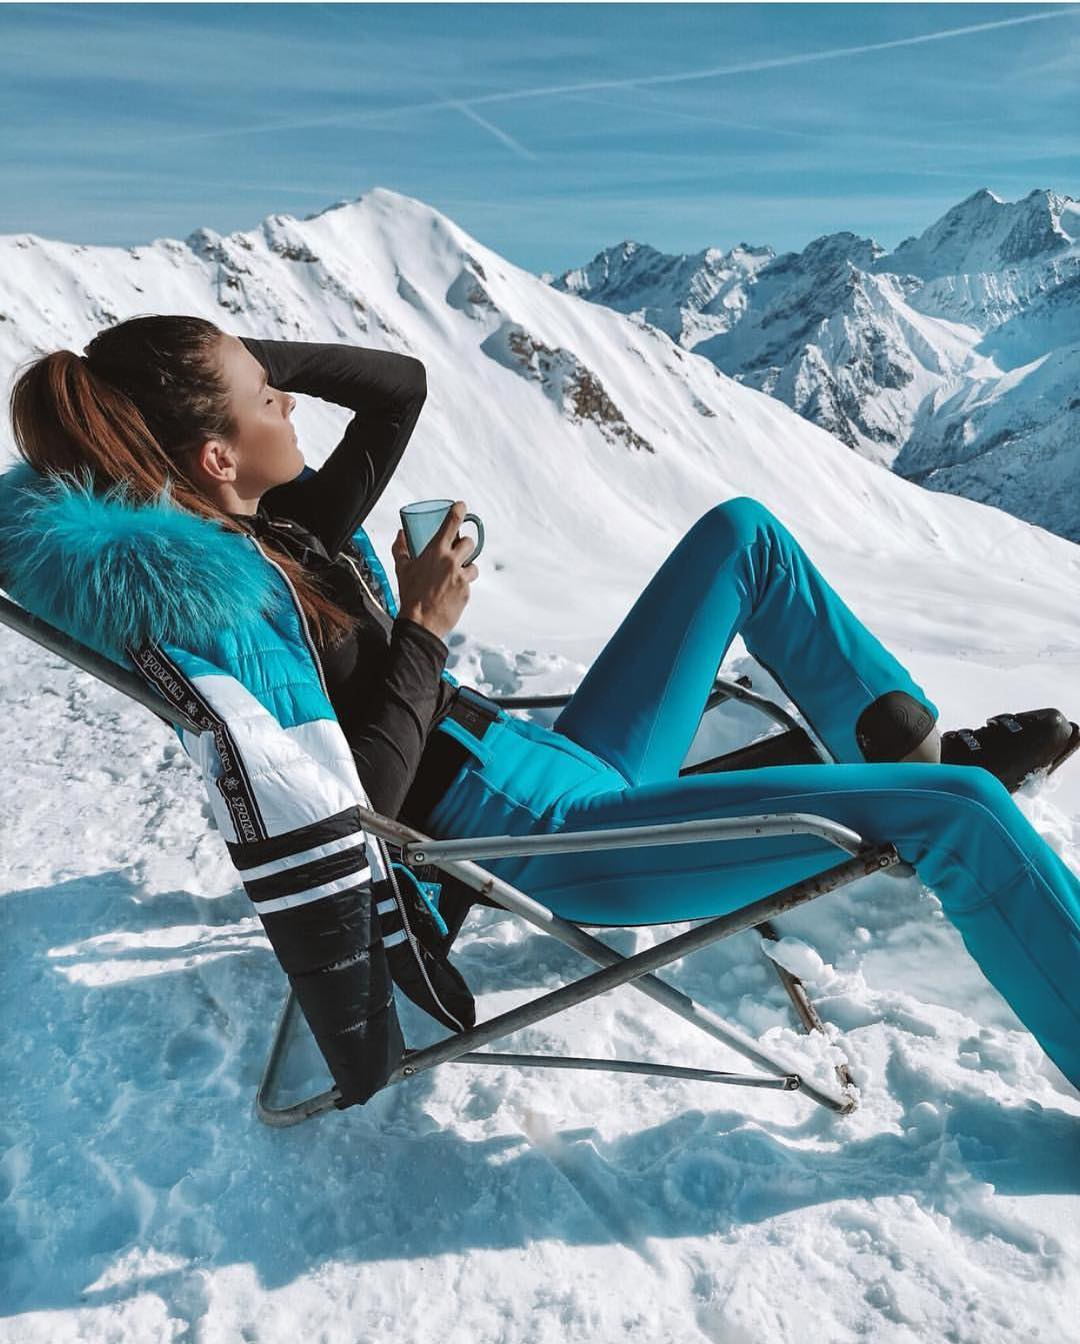 Turquoise Blue Ski Suit For Your Next Winter Mountain Trip 2020